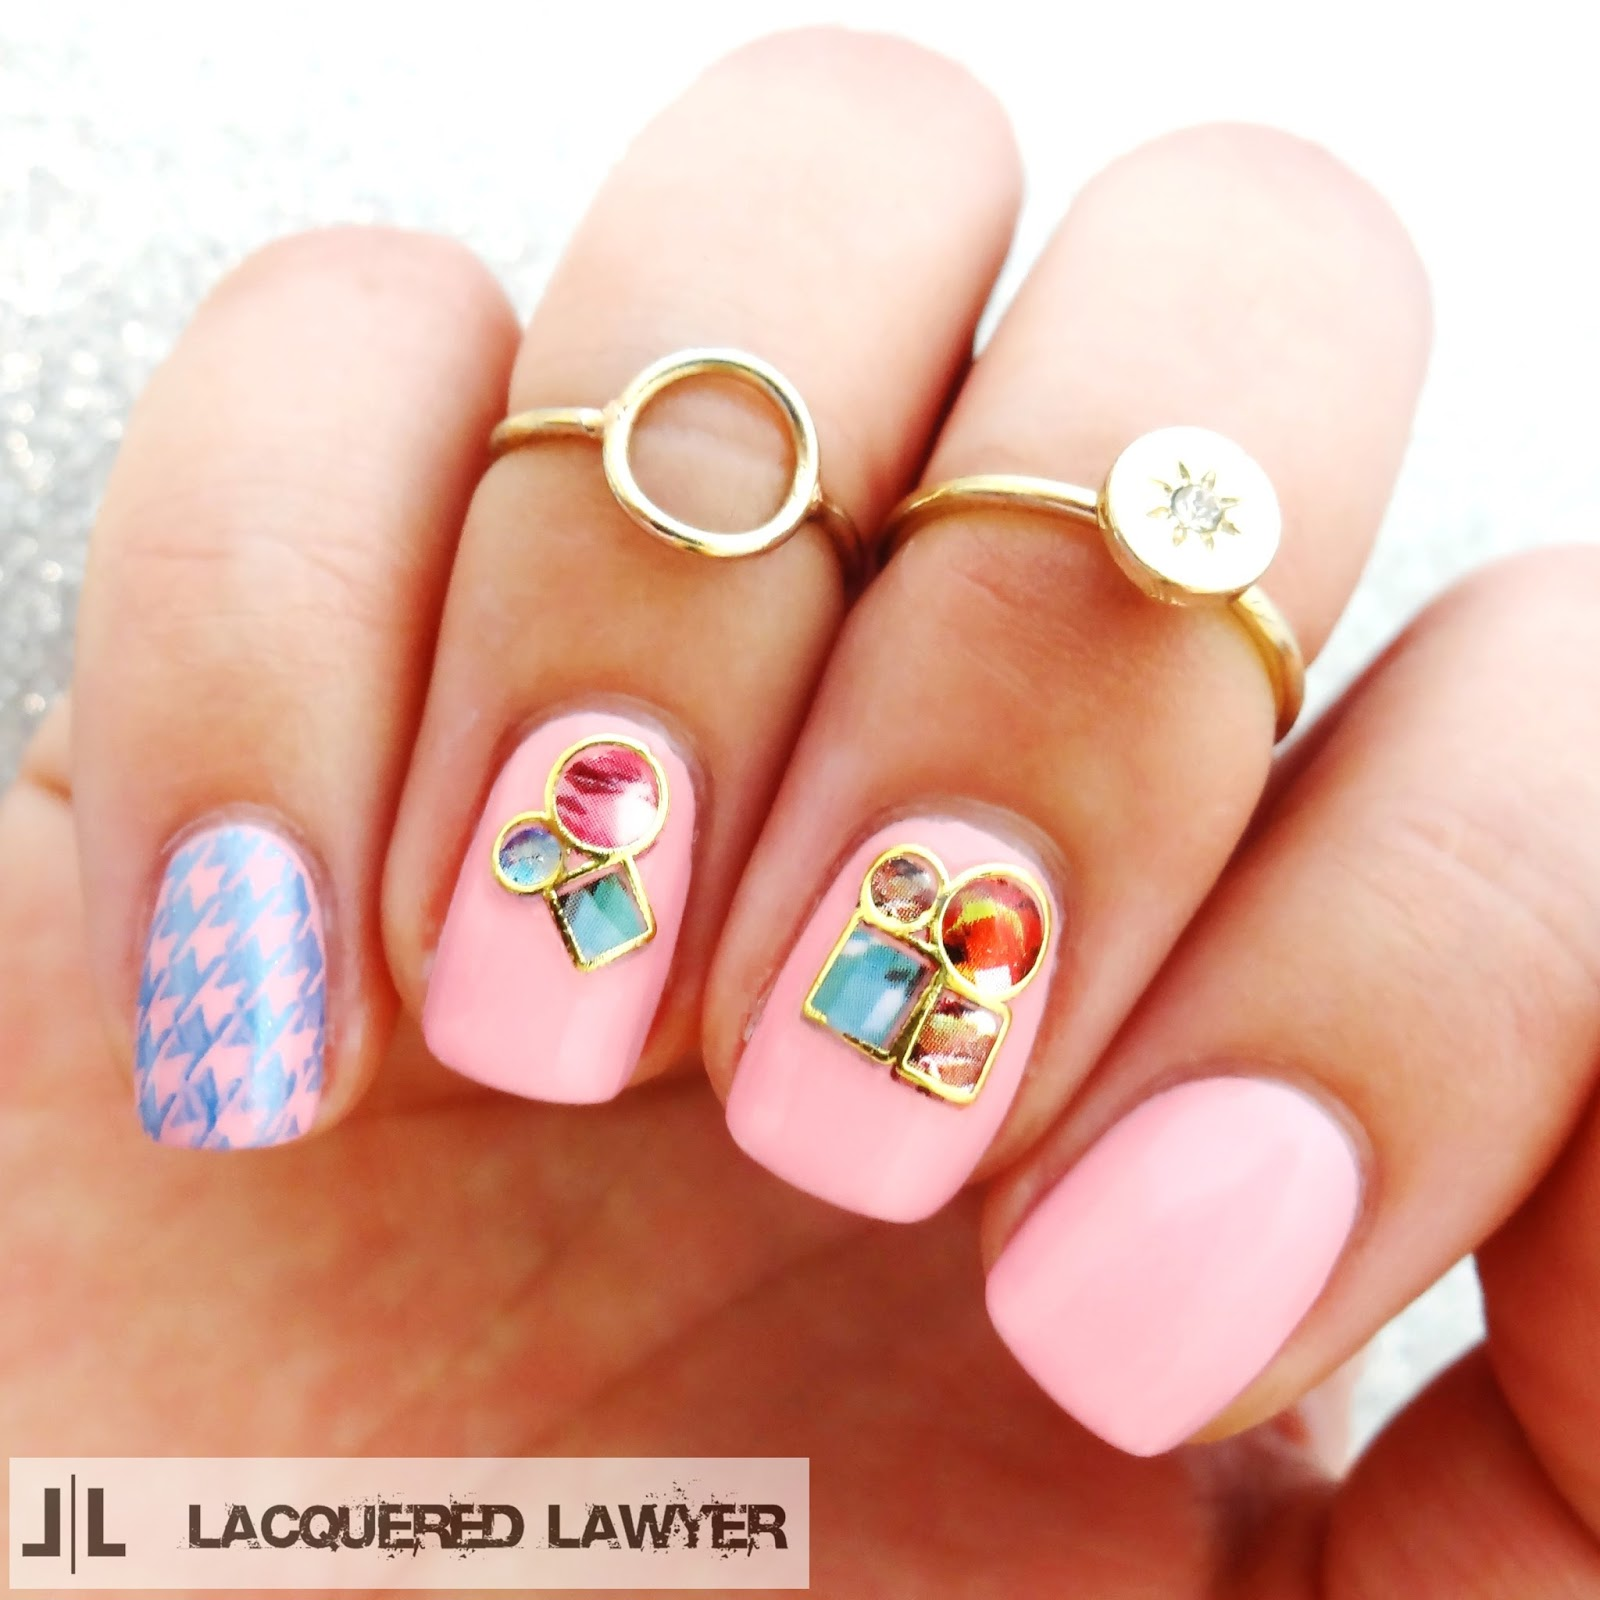 Lacquered Lawyer Nail Art Blog June 2016